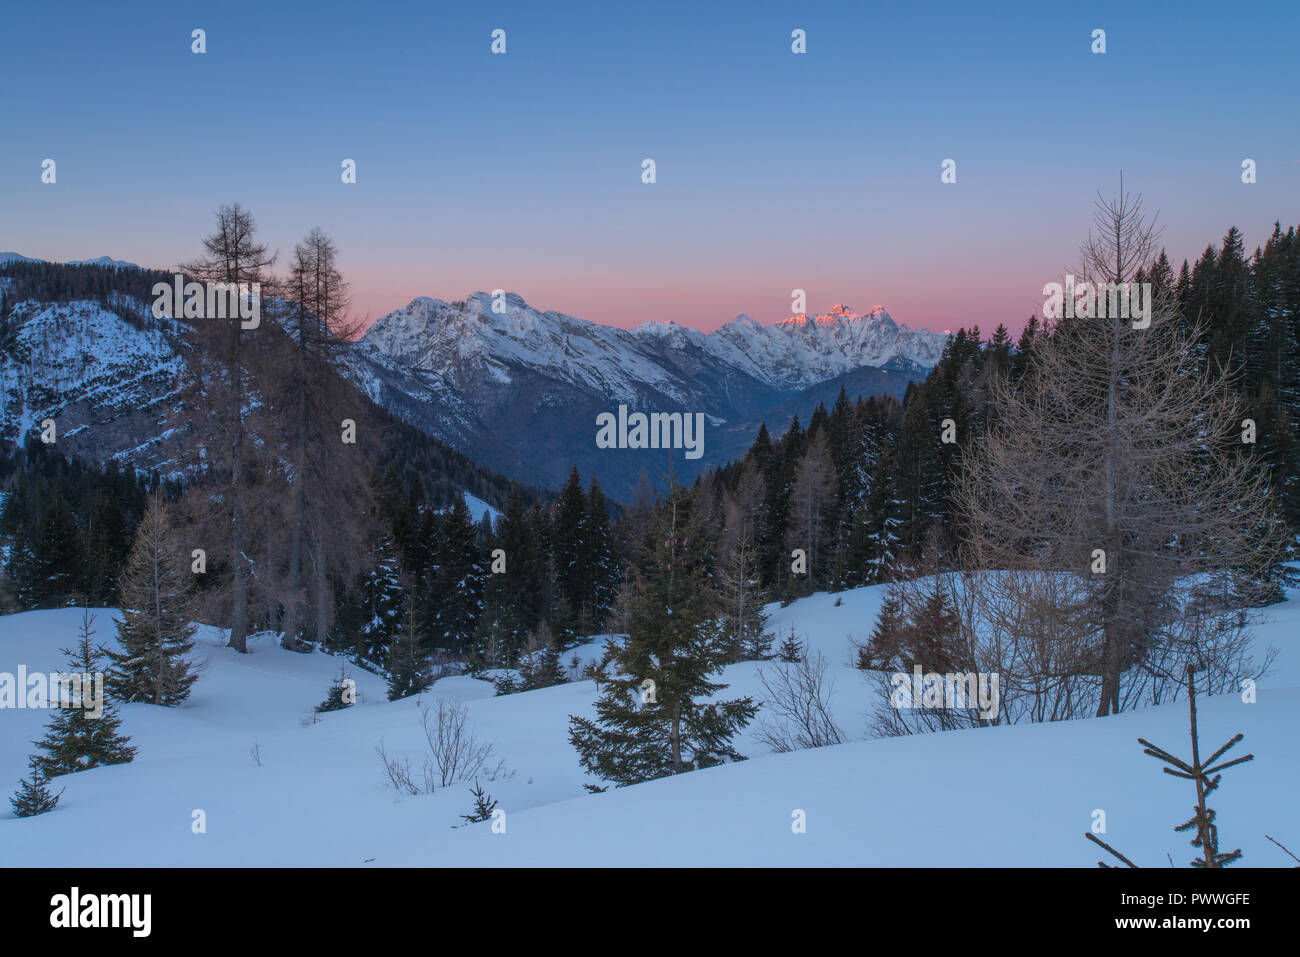 Serene, peaceful sunrise with alpenglow on the Italian Alps. First day of the year, fresh snow, vivid colors and snowcapped mountains amidst trees. - Stock Image